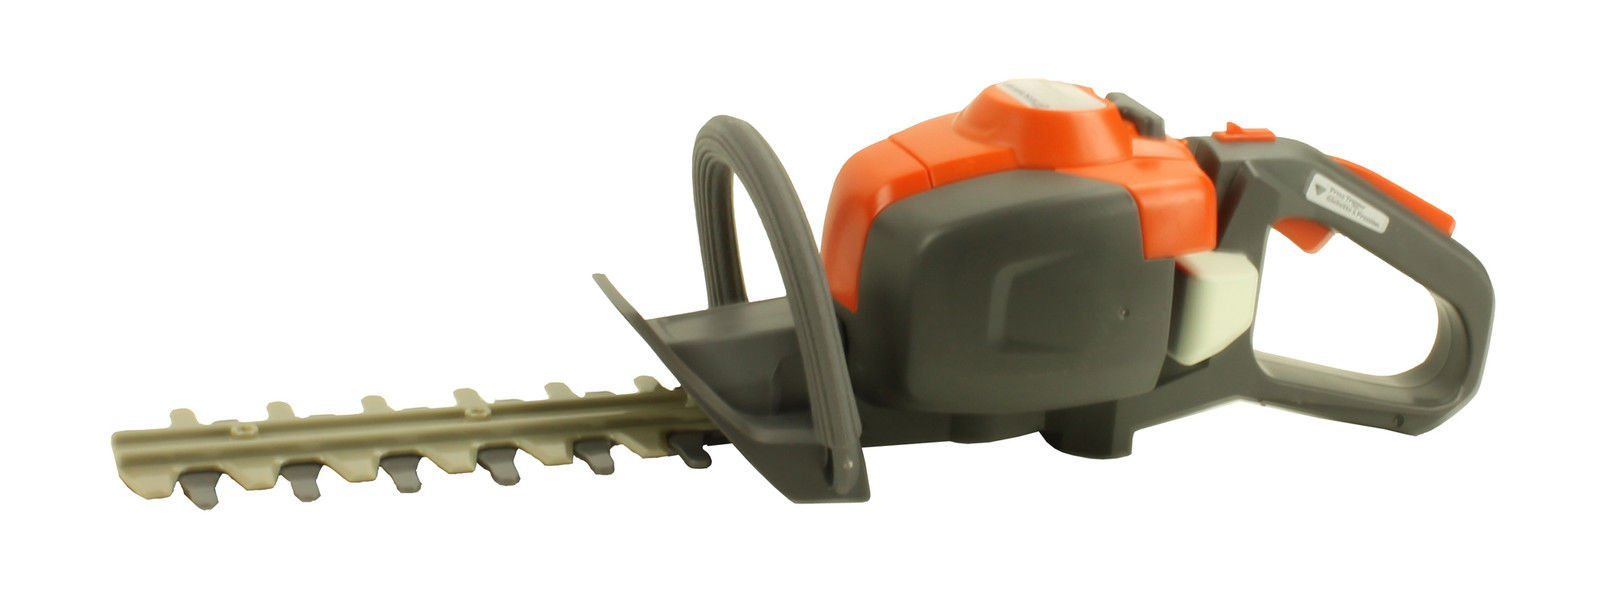 Gardening Tools for Kids Auto Battery Toys Operated Backyard Hedge Trimmer Children Unisex Creative Games Realistic Toy - House Deals by House Deals (Image #1)